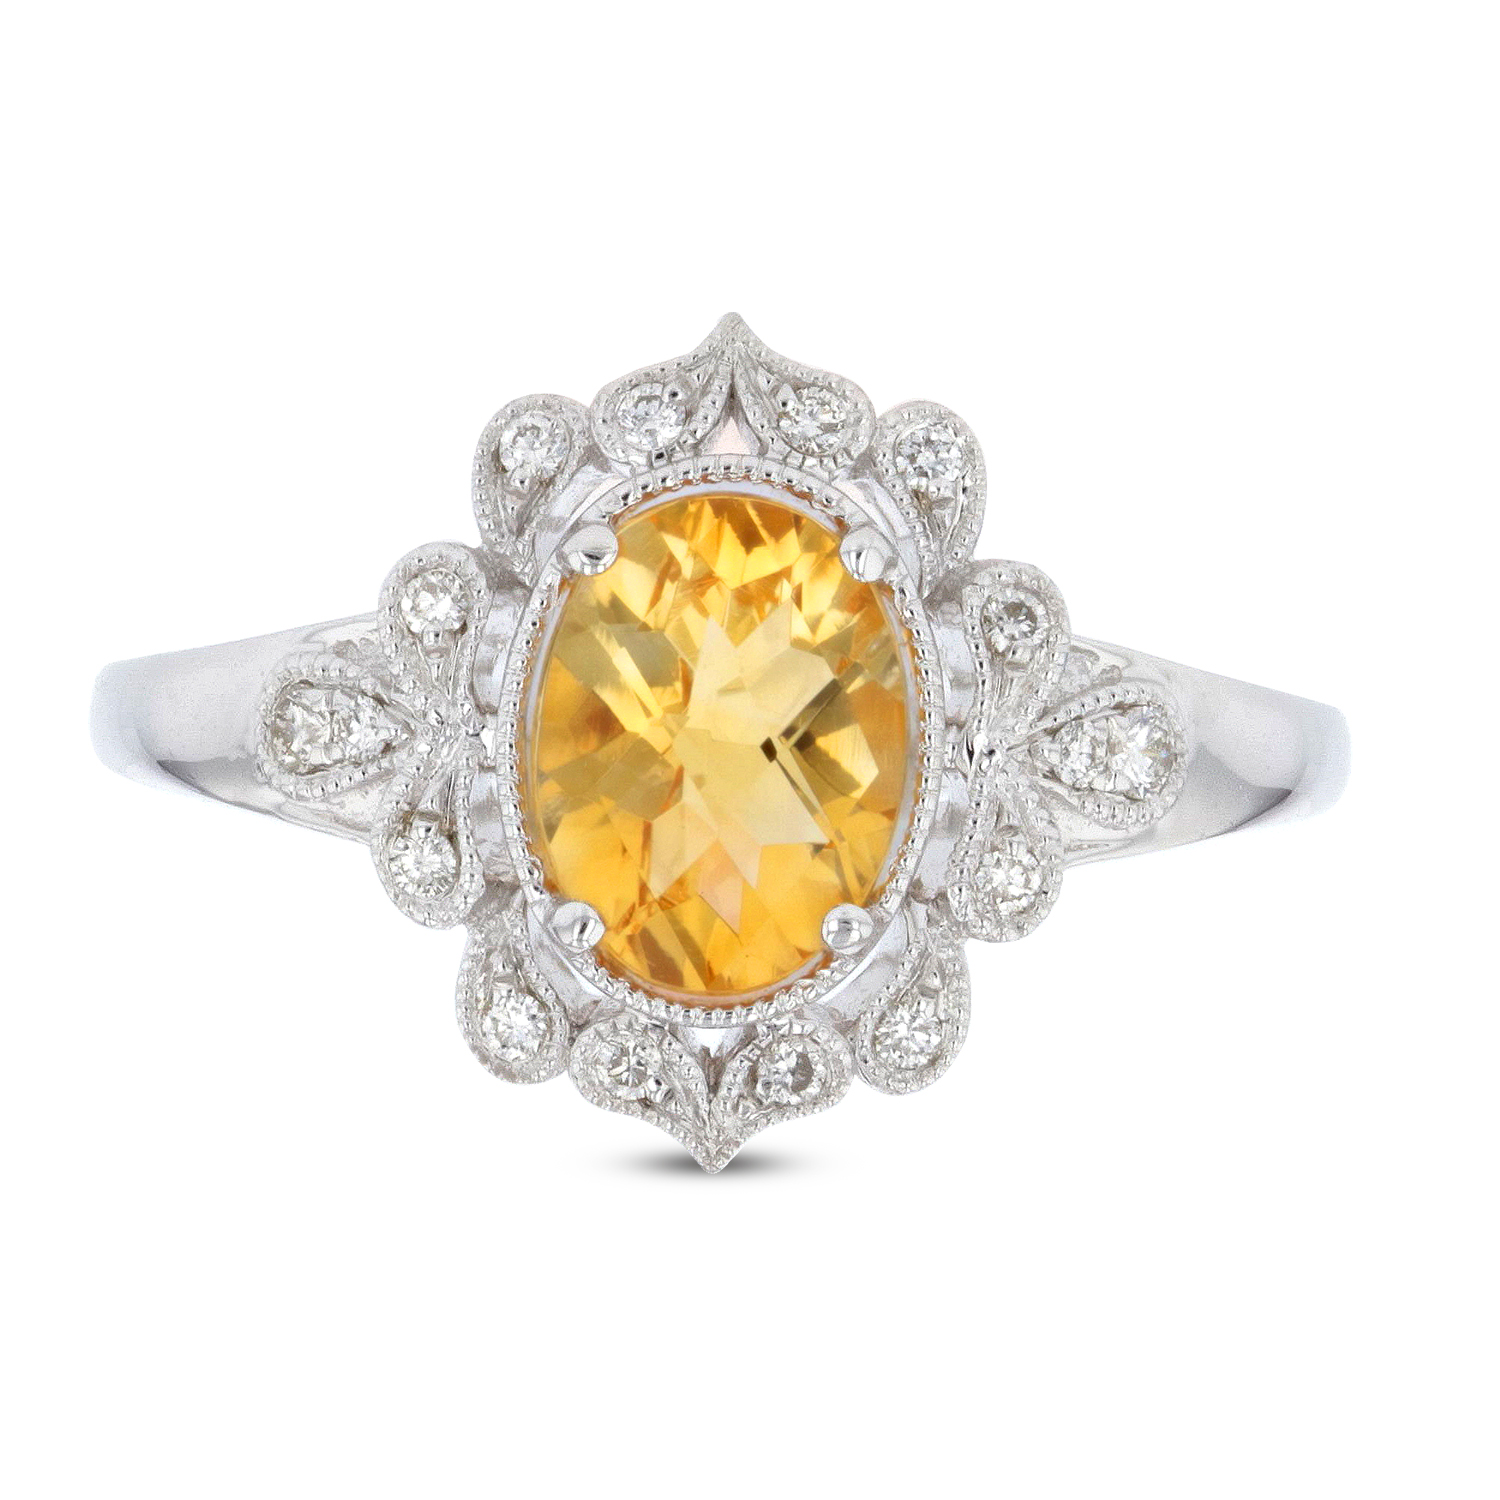 View 1.13ctw Diamond and Citrine Ring in 14k White Gold